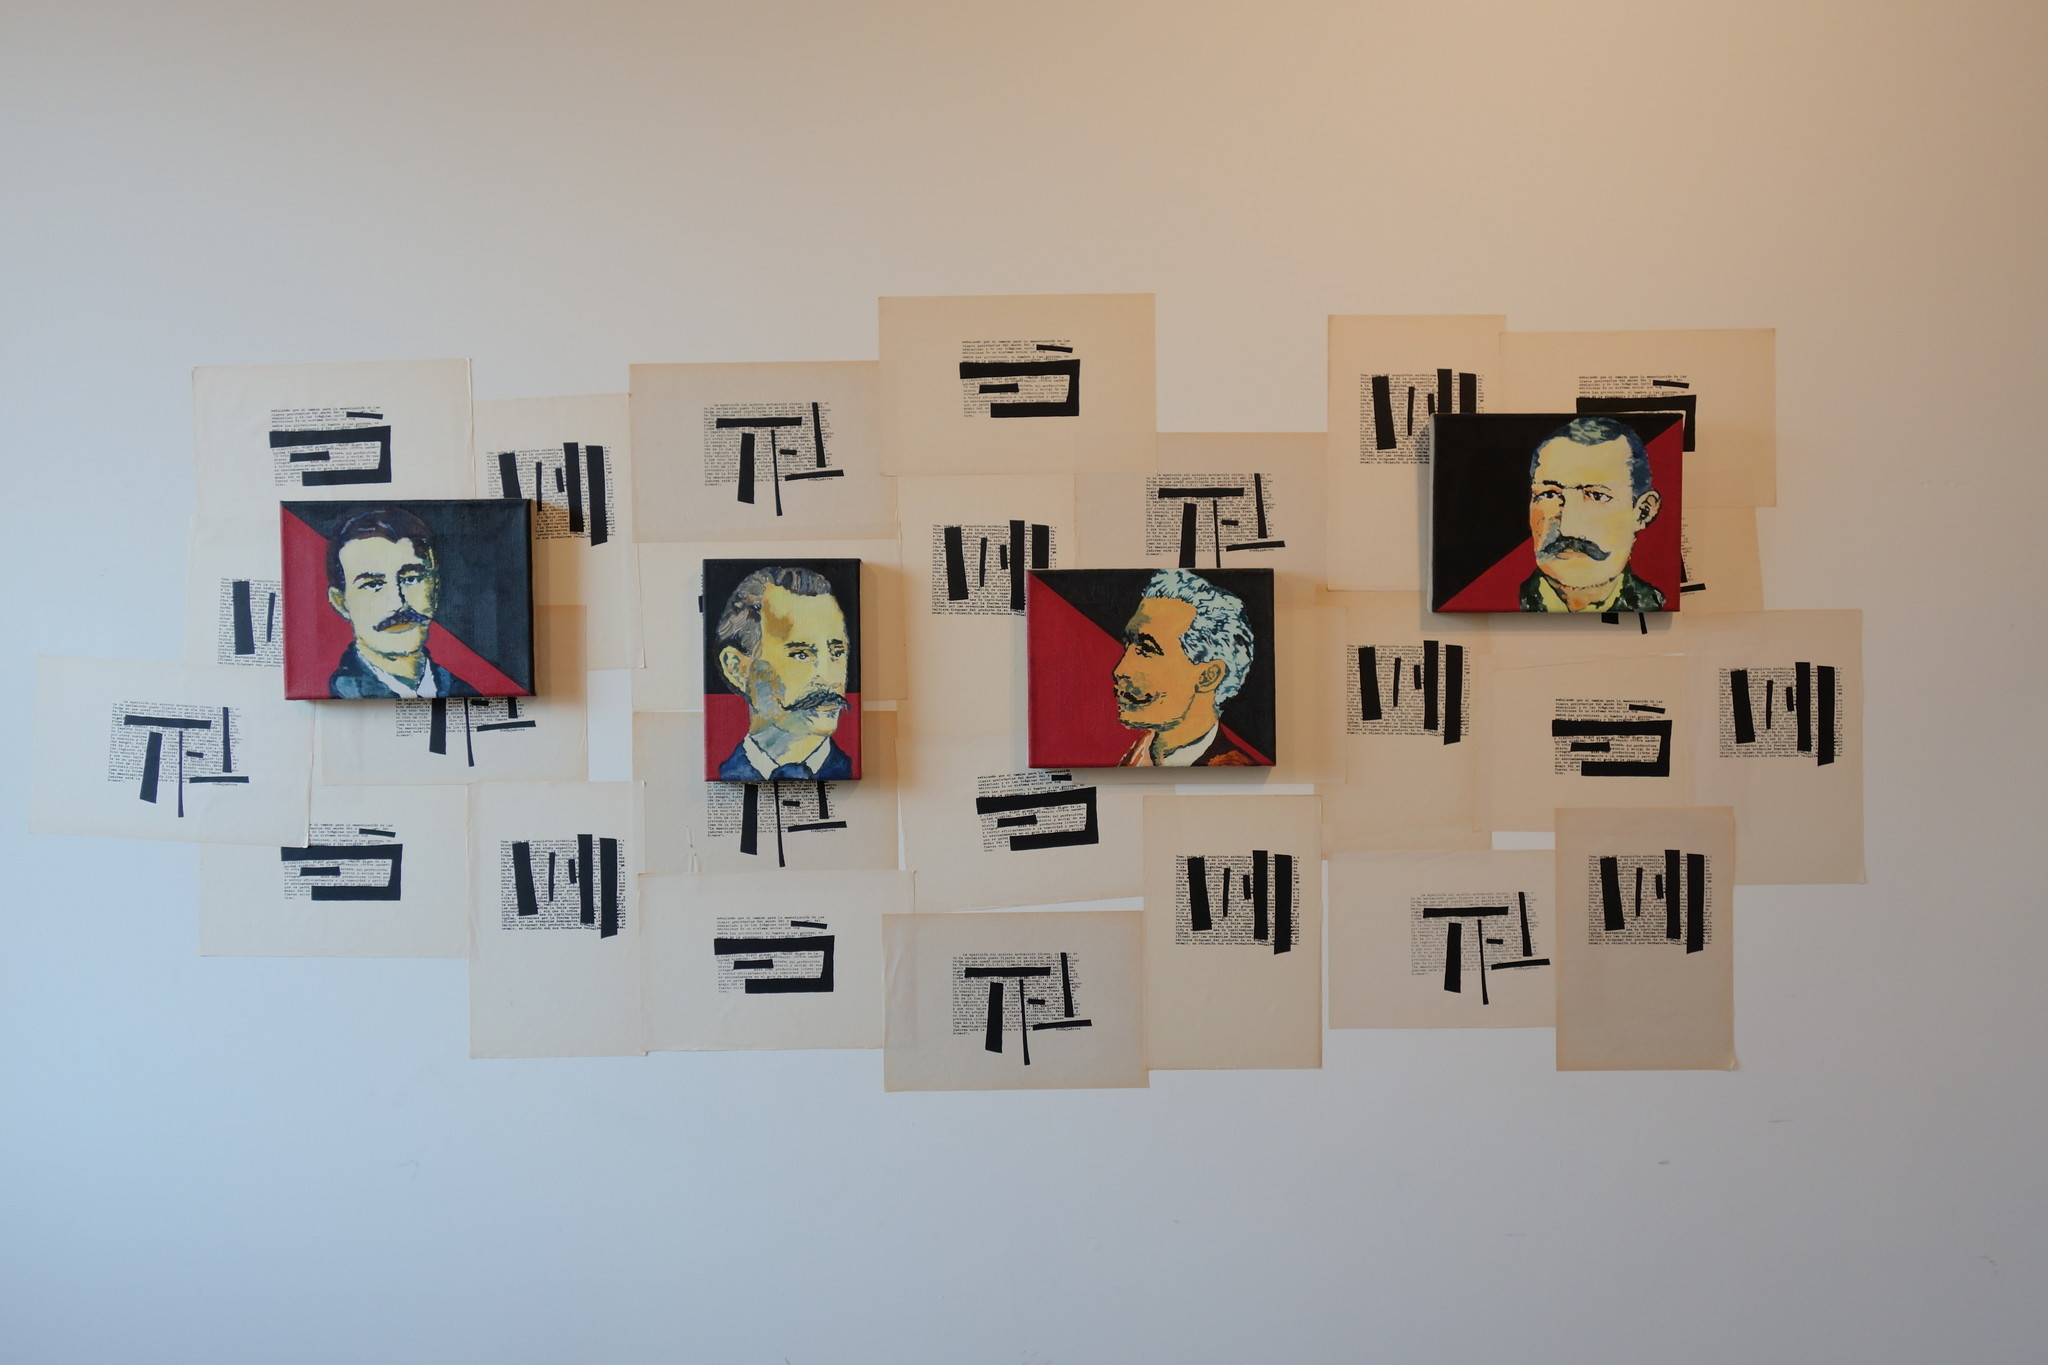 """Mártires de Chicago,"" by Magdalena Jitrik,"" at ProyectosLA."